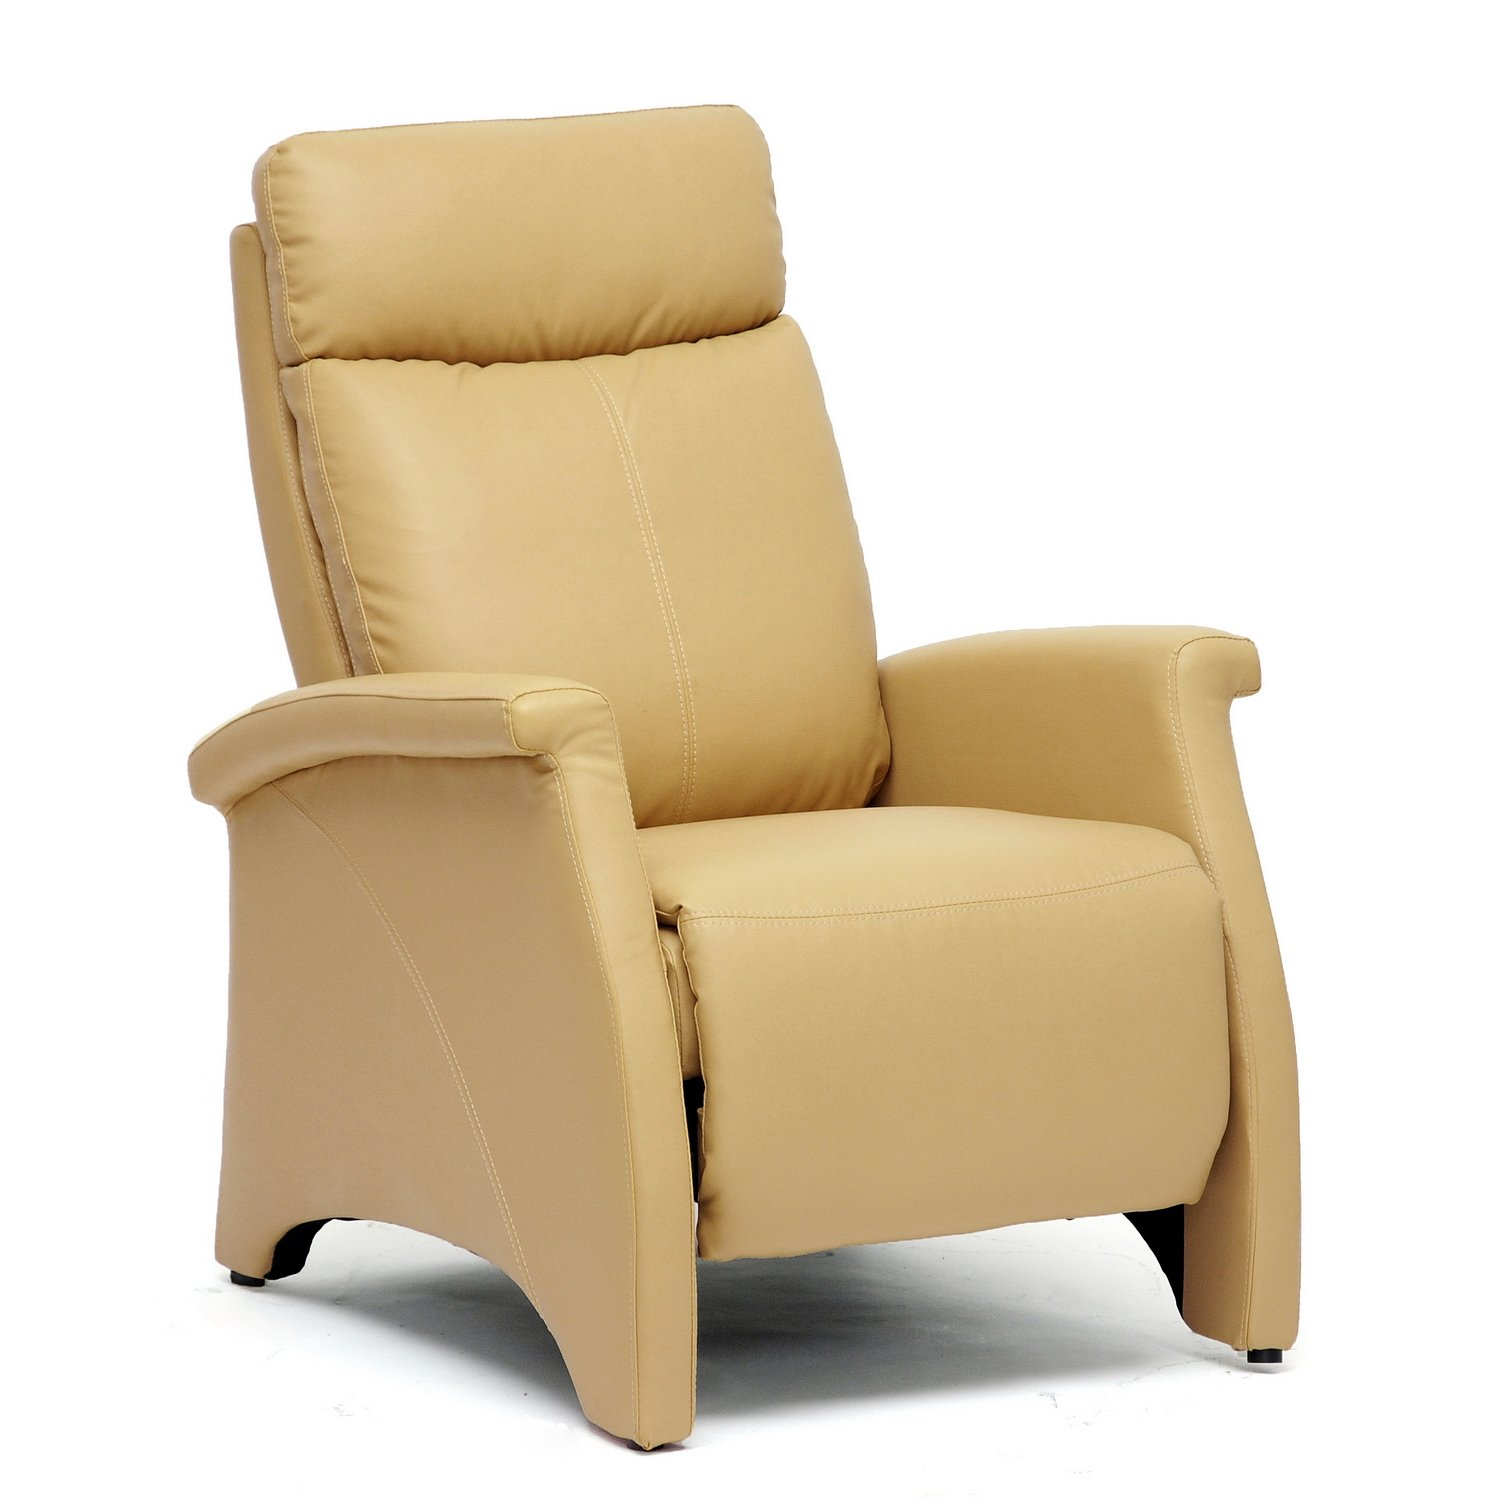 Amazon.com Baxton Studio Sequim Modern Recliner Club Chair Tan Kitchen u0026 Dining  sc 1 st  Amazon.com & Amazon.com: Baxton Studio Sequim Modern Recliner Club Chair Tan ... islam-shia.org